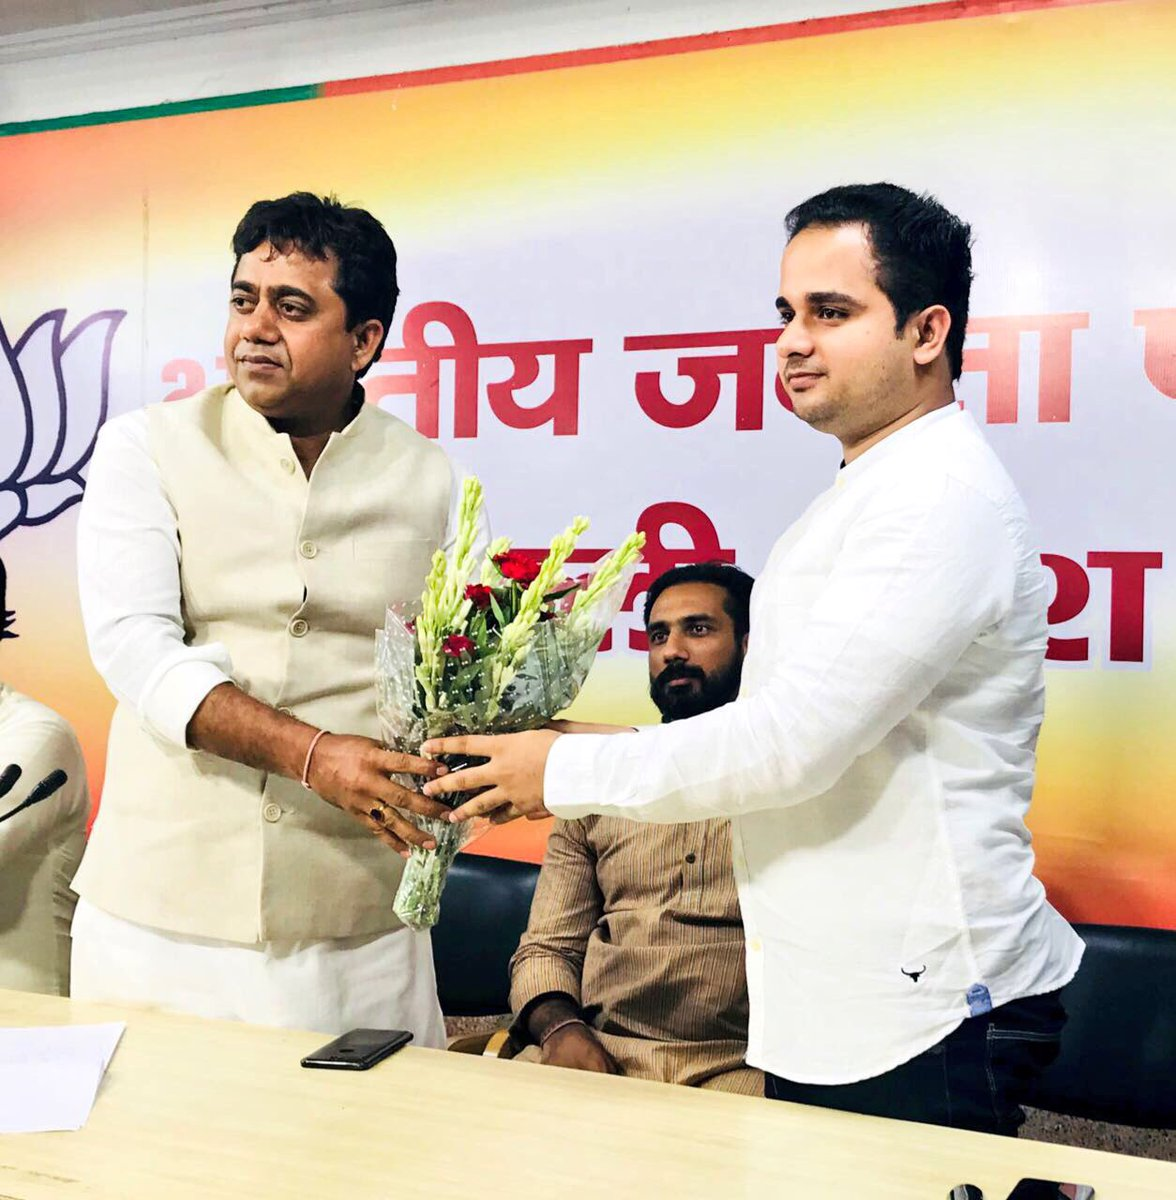 Congratulations & Best wishes to @BJYM Delhi State President @SunilYadavBJP ji on being selected as @BJP4Delhi candidate for New Delhi Assembly Constituency!   #VoteForBJP #VoteForModi on 08th February 2020 pic.twitter.com/Y596SCmHMj